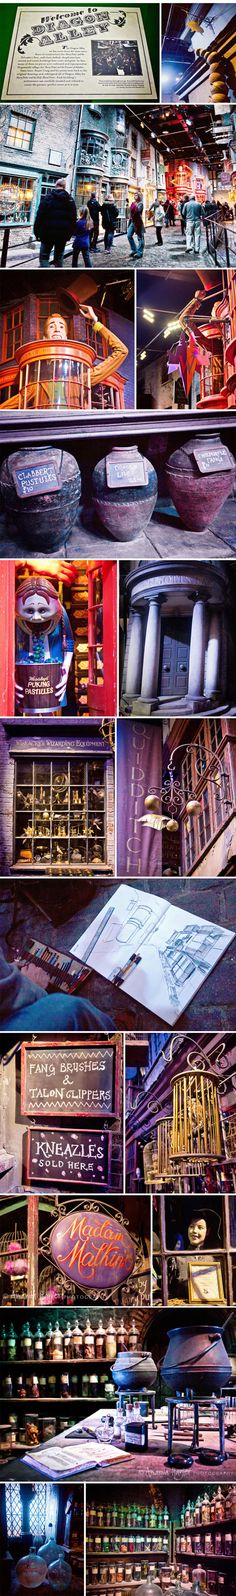 Harry Potter Studio Tour… if I don't go here before I die I will consider my life incomplete